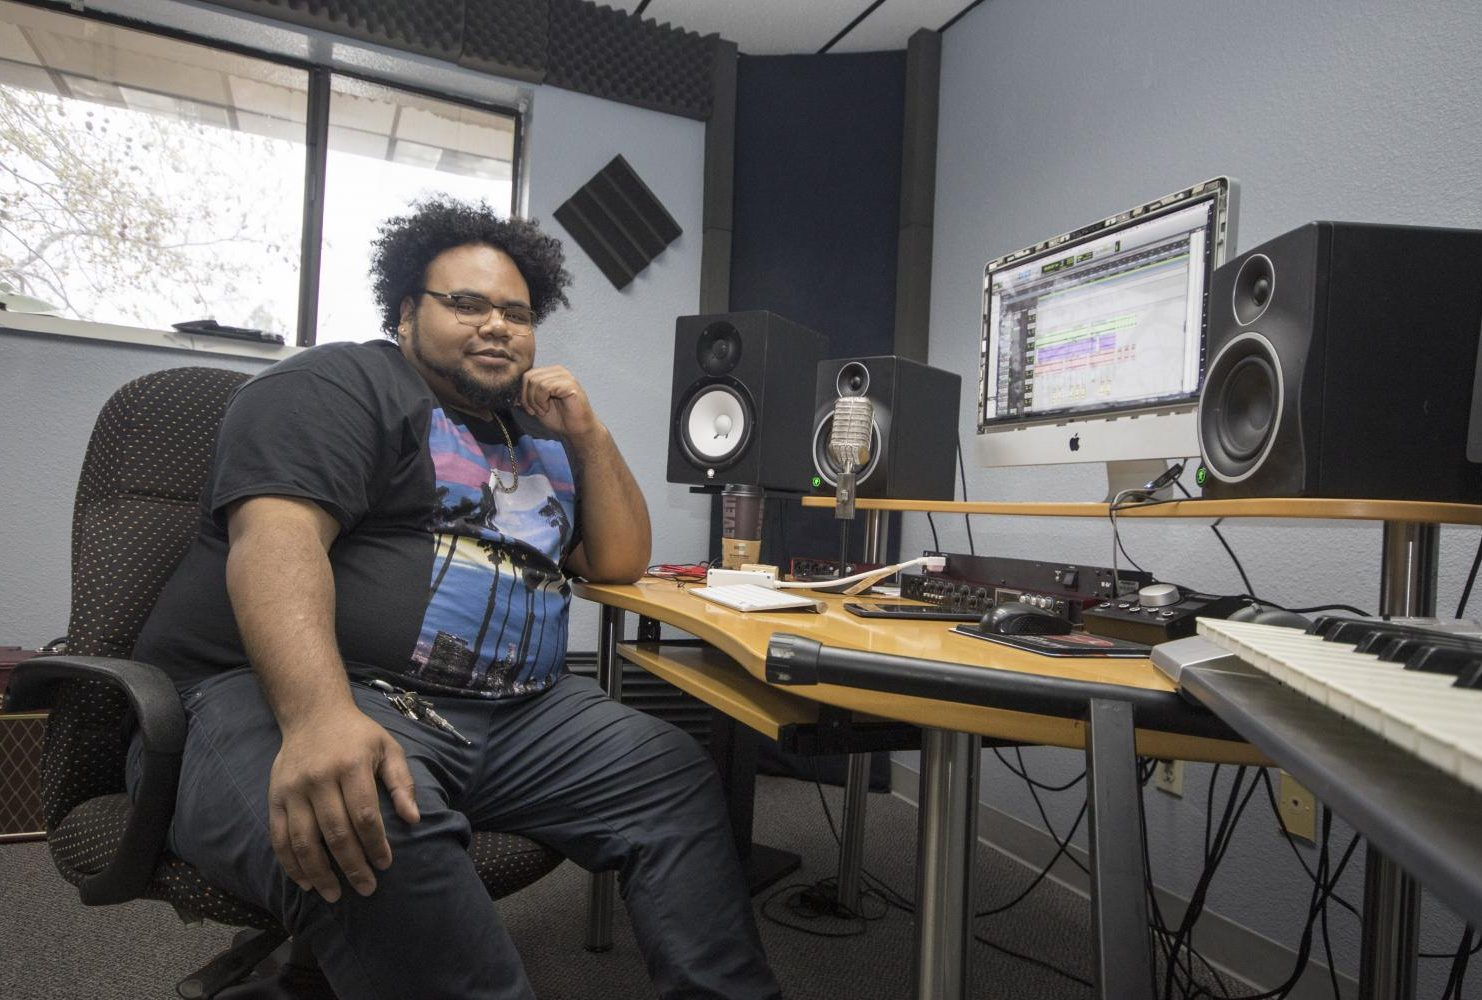 Former American River College student Jesse Hanes, otherwise known as Kassette, has been making music in the new Think Tank studio in Sacramento.